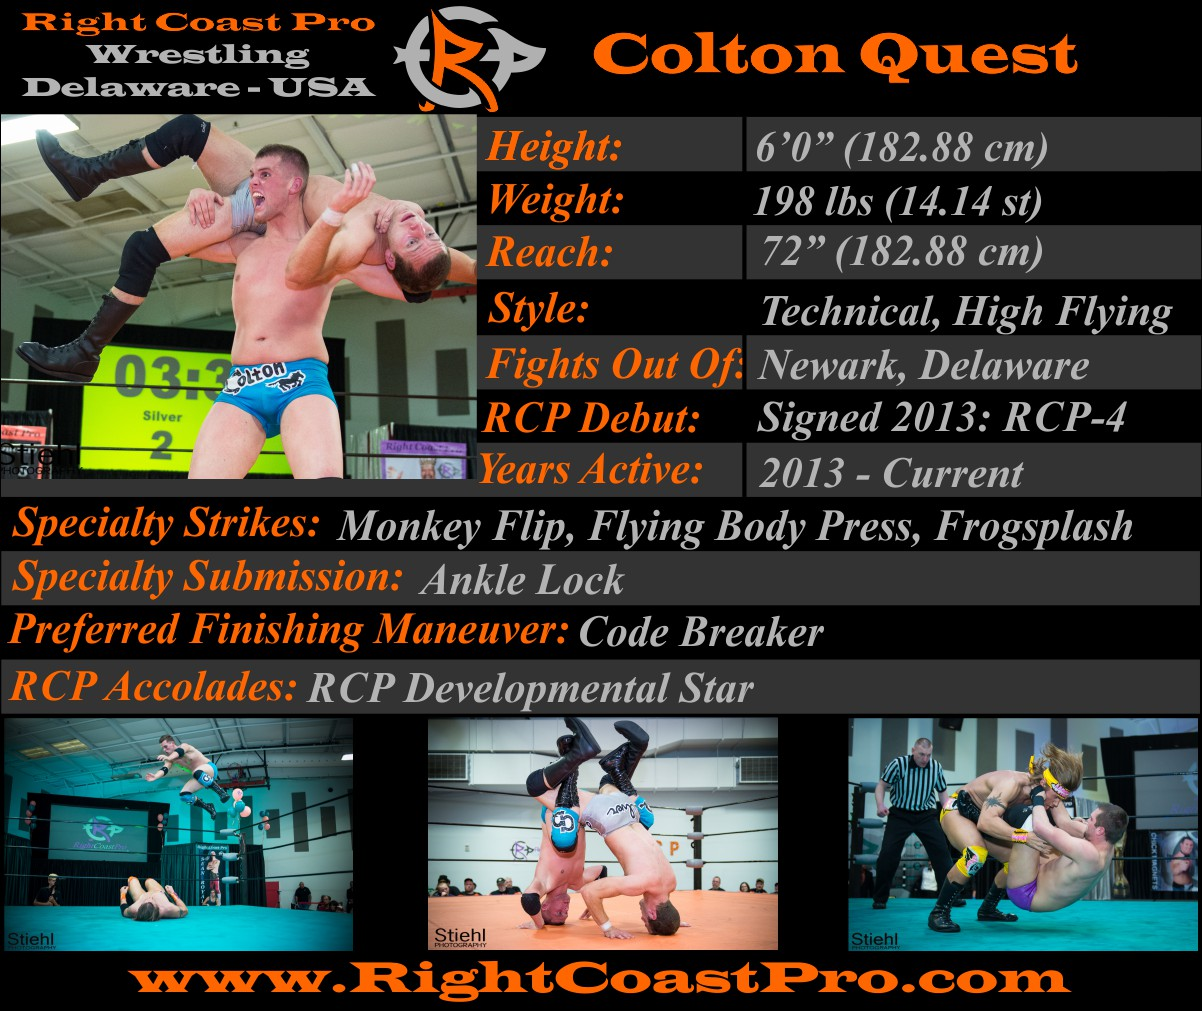 ColtonQuest Profile RightCoastPro Wrestling Delaware